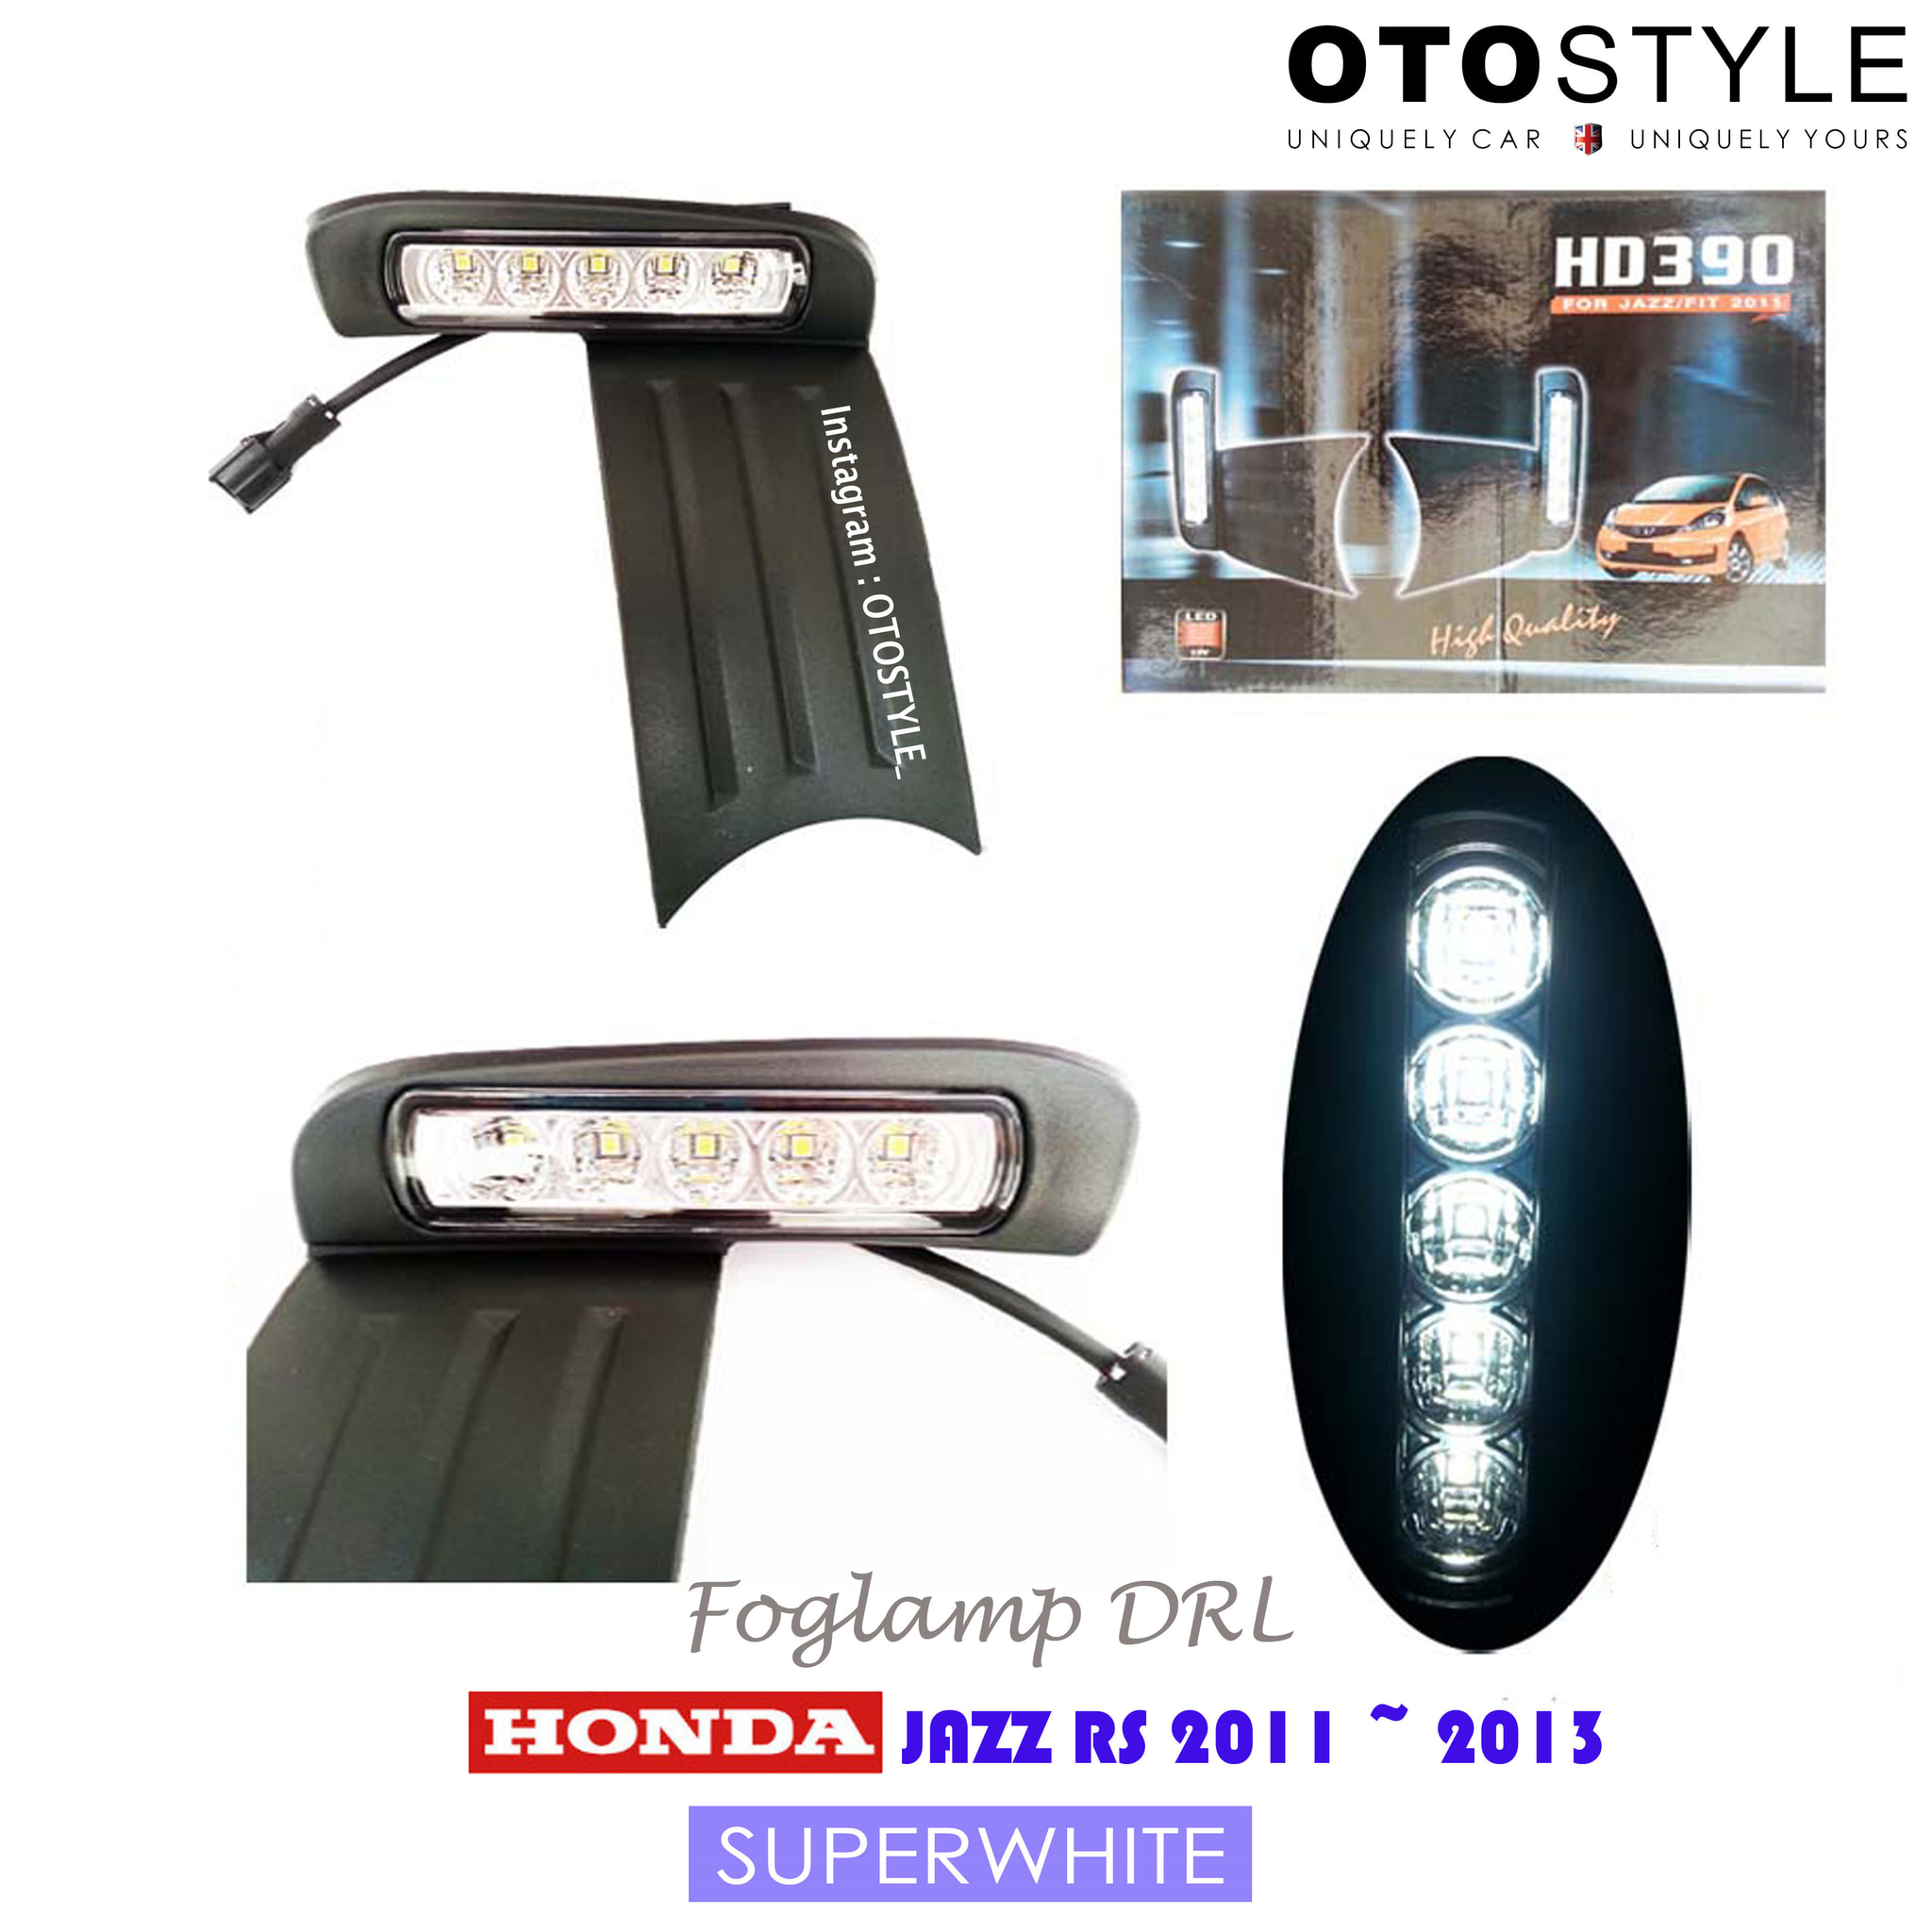 Foglamp DRL Honda Jazz 2012 ON Fit/Rs/S - Superwhite Light